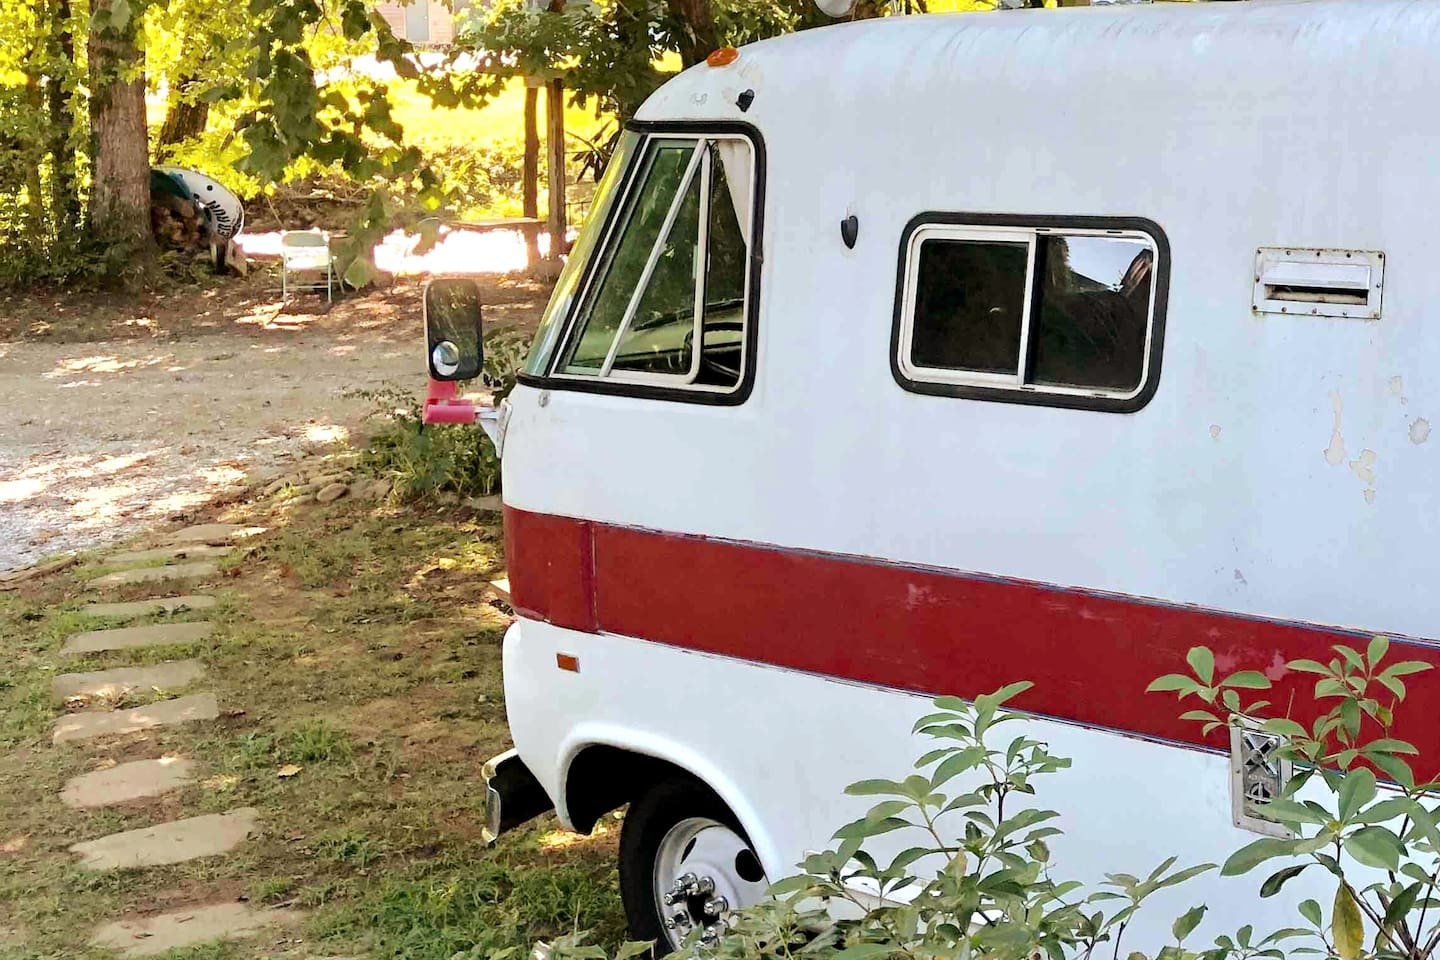 The RV is parked jus  a stone's throw from the best, most secret fly fishing spot in the area. Nestled by rhododendrons under the canopy of an old maple tree, the natural setting is simple and peaceful.